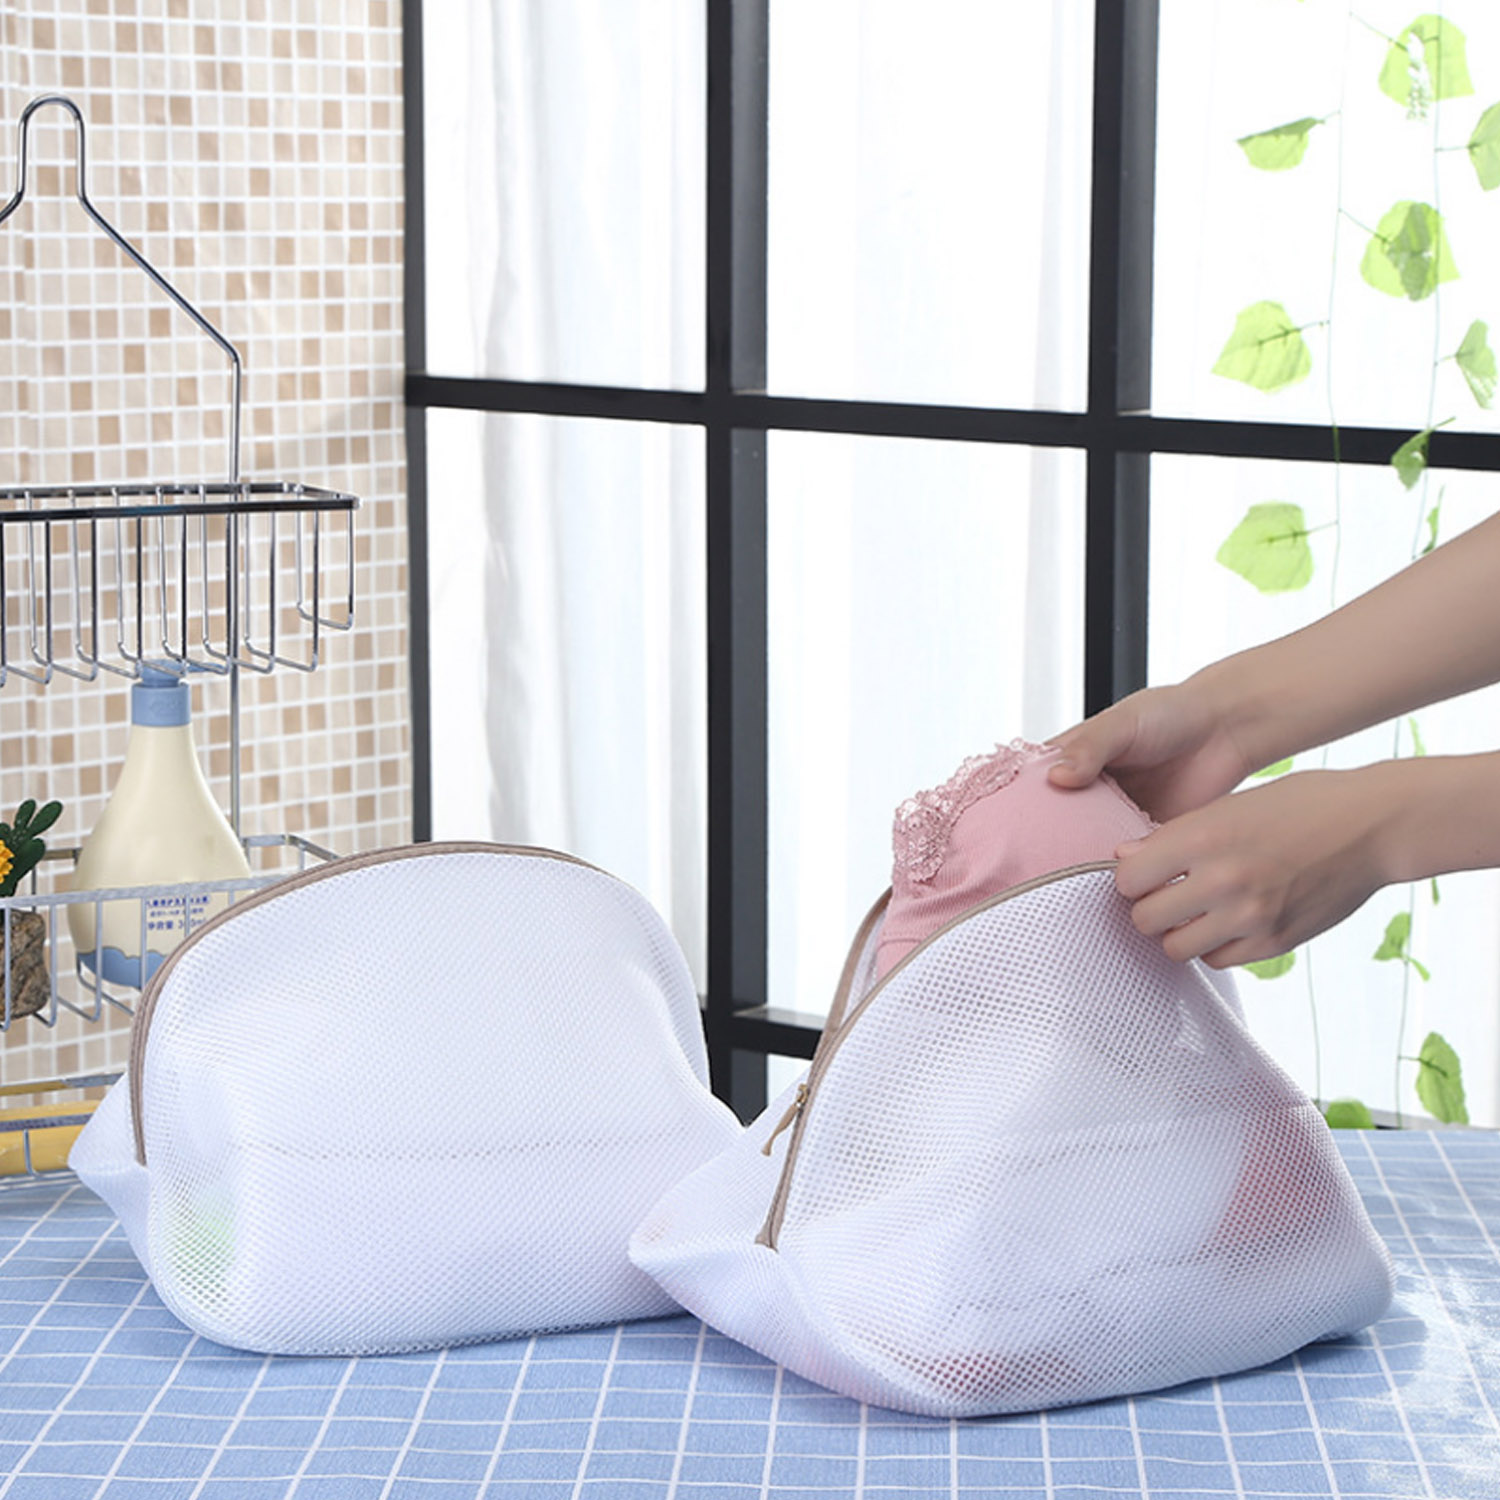 Double Layer Mesh Laundry Net Bag Storage Bags With Zip Closure For Washing Machine Clothes Bras Socks Shoes